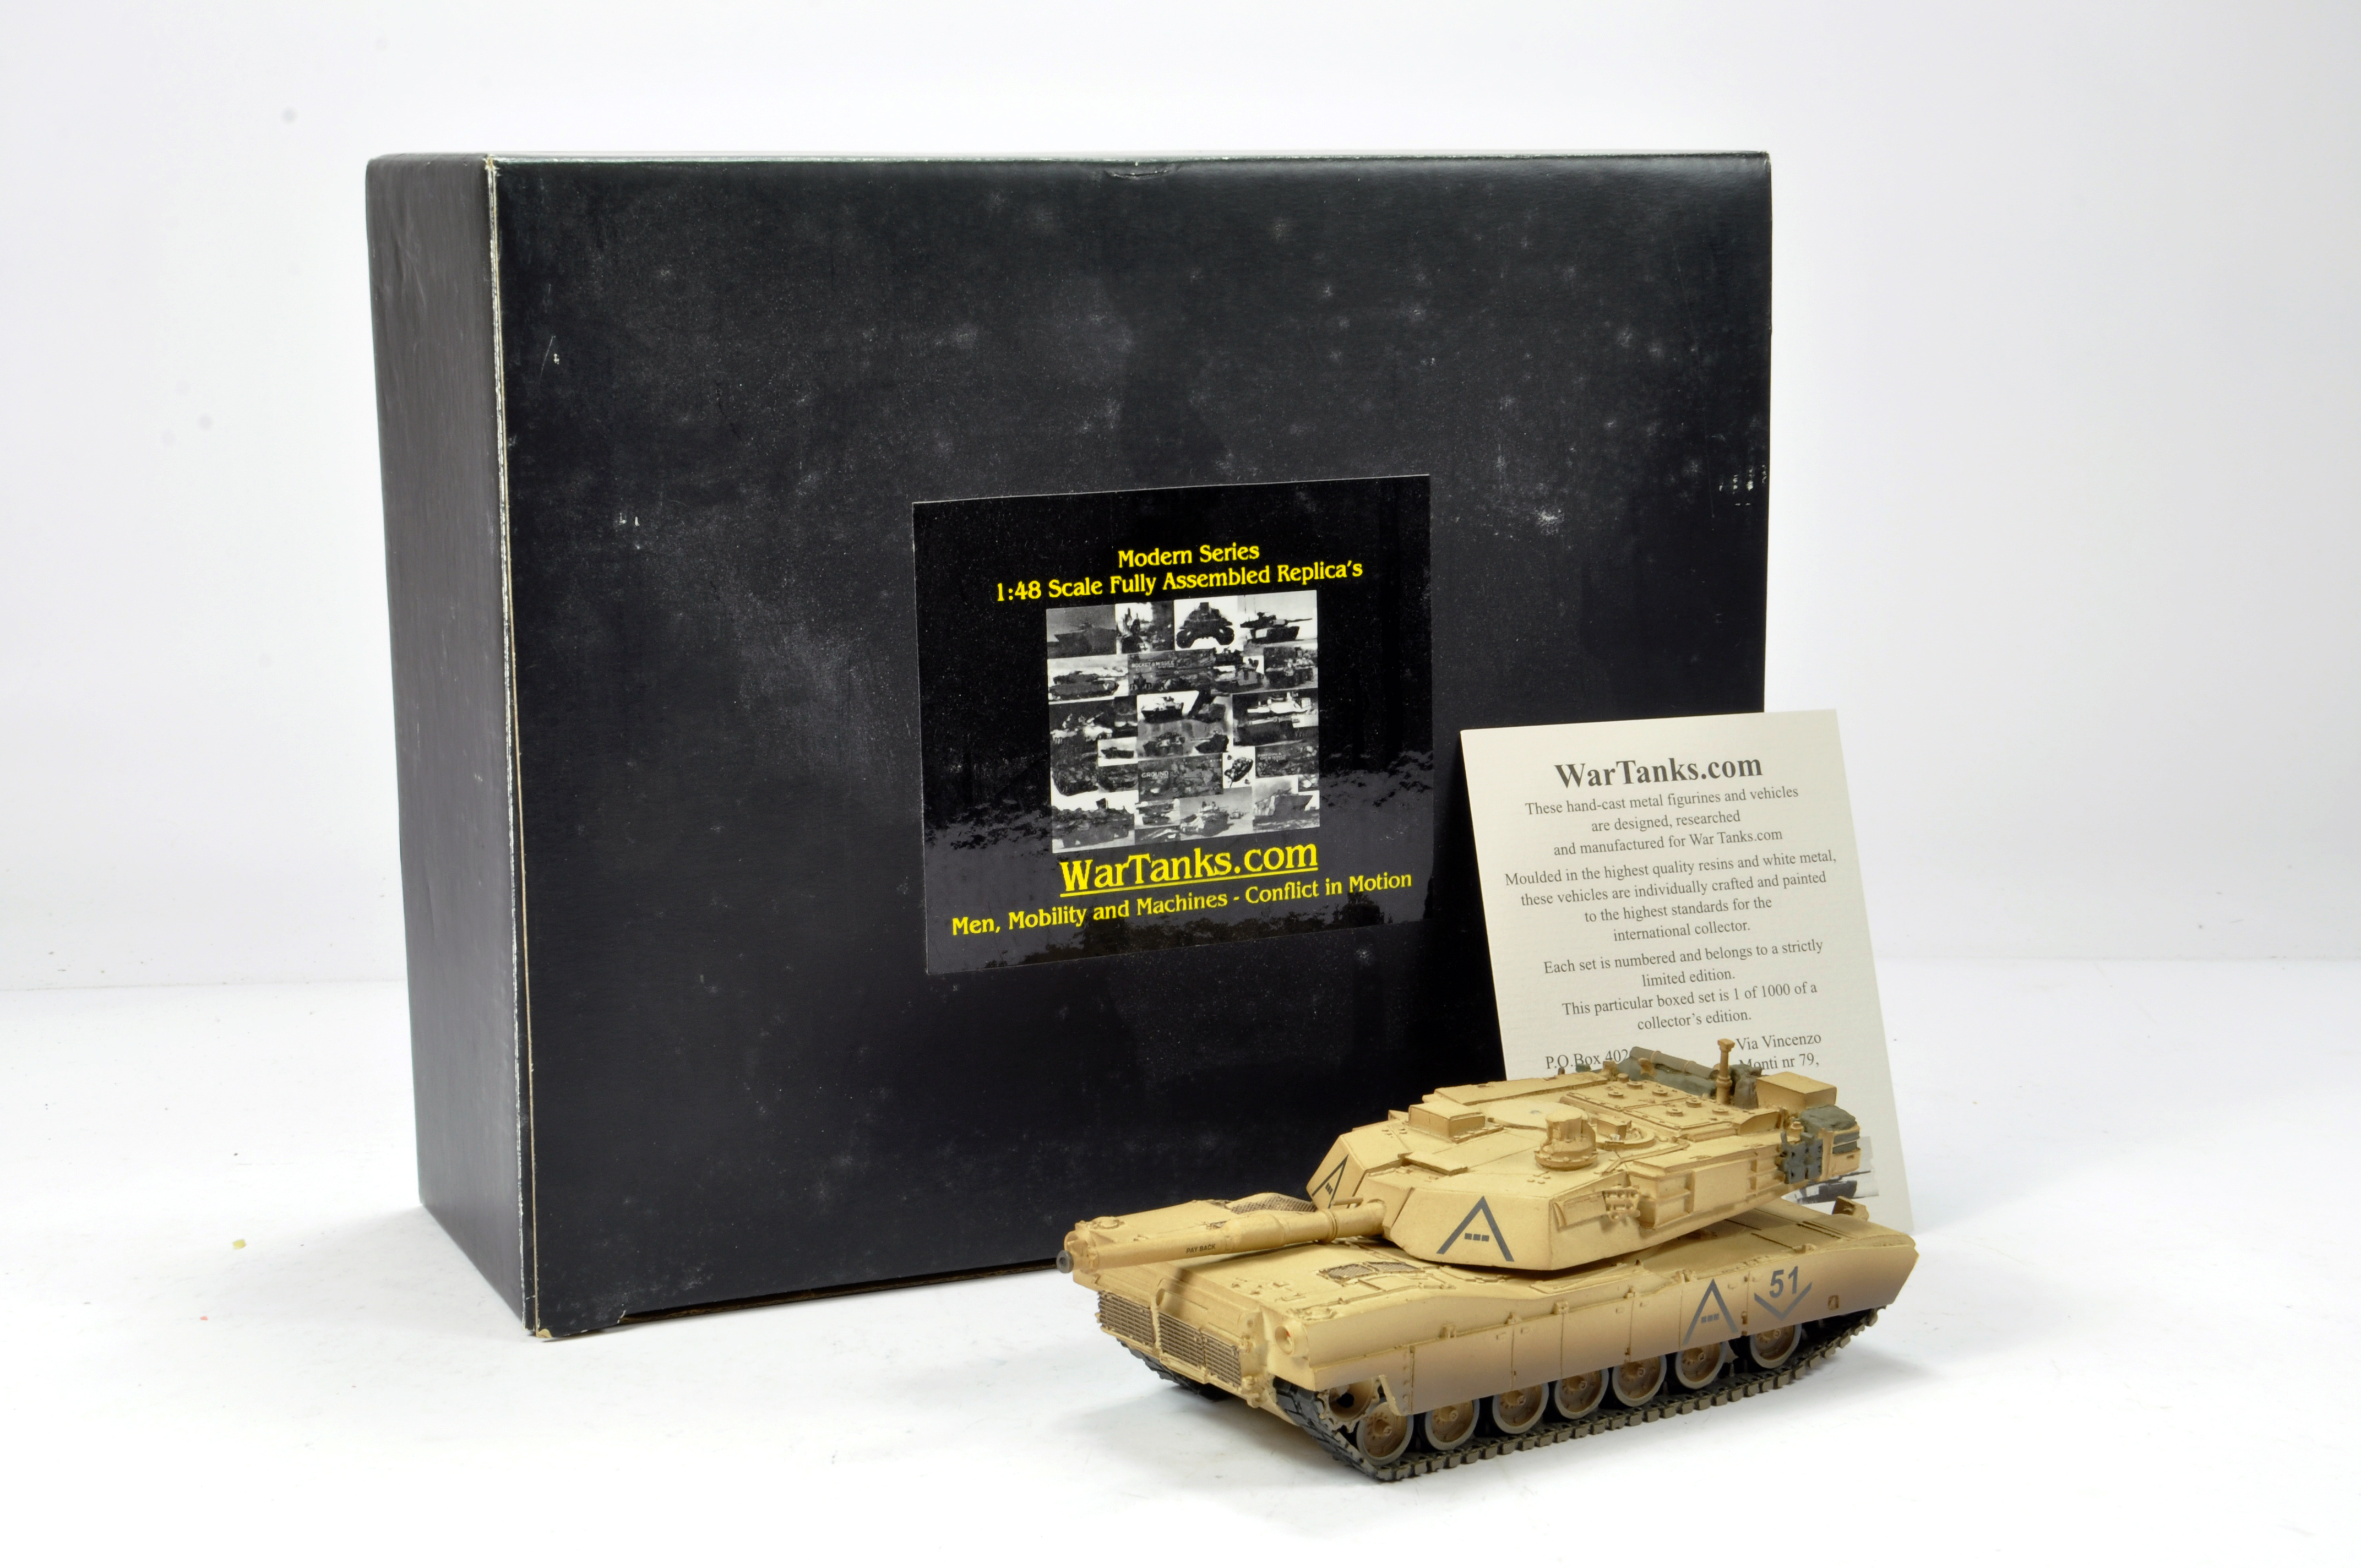 Lot 1125 - Wartanks.com 1/48 Resin White Metal issue comprising limited edition Road to Bagdad M1A1 Abrams